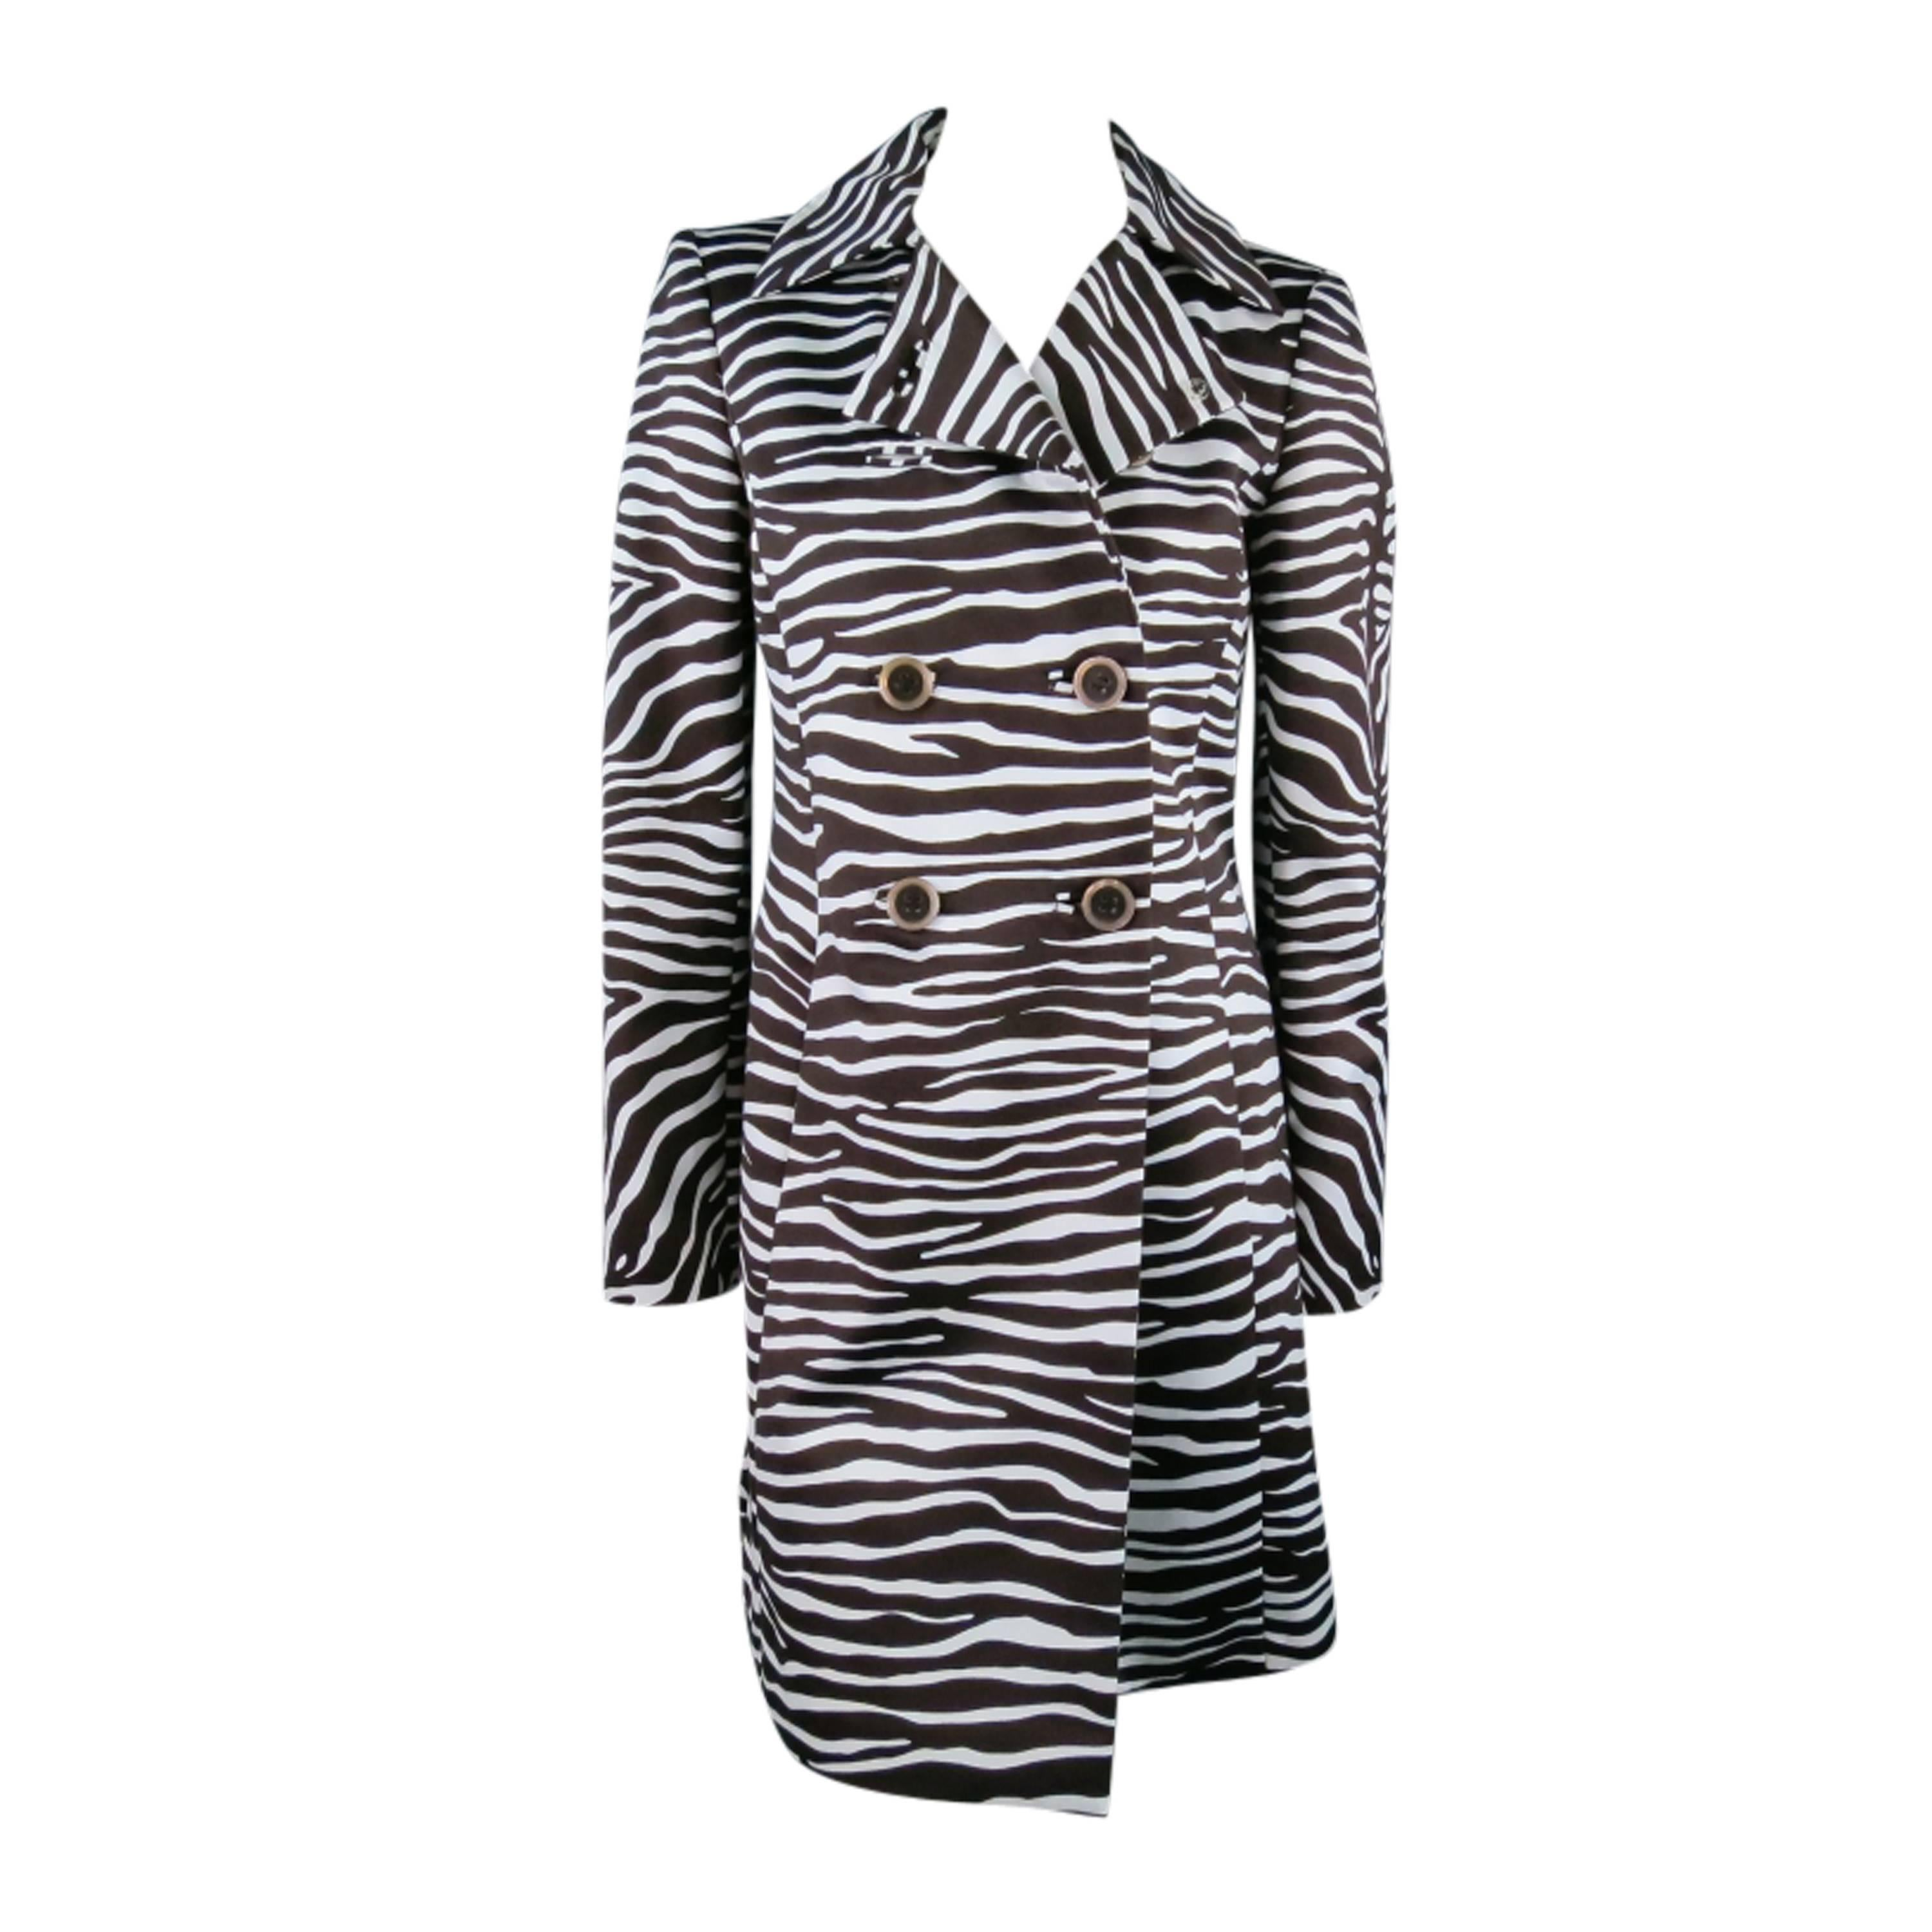 Michael Kors Brown and White Zebra Print Double Breasted Trench coat